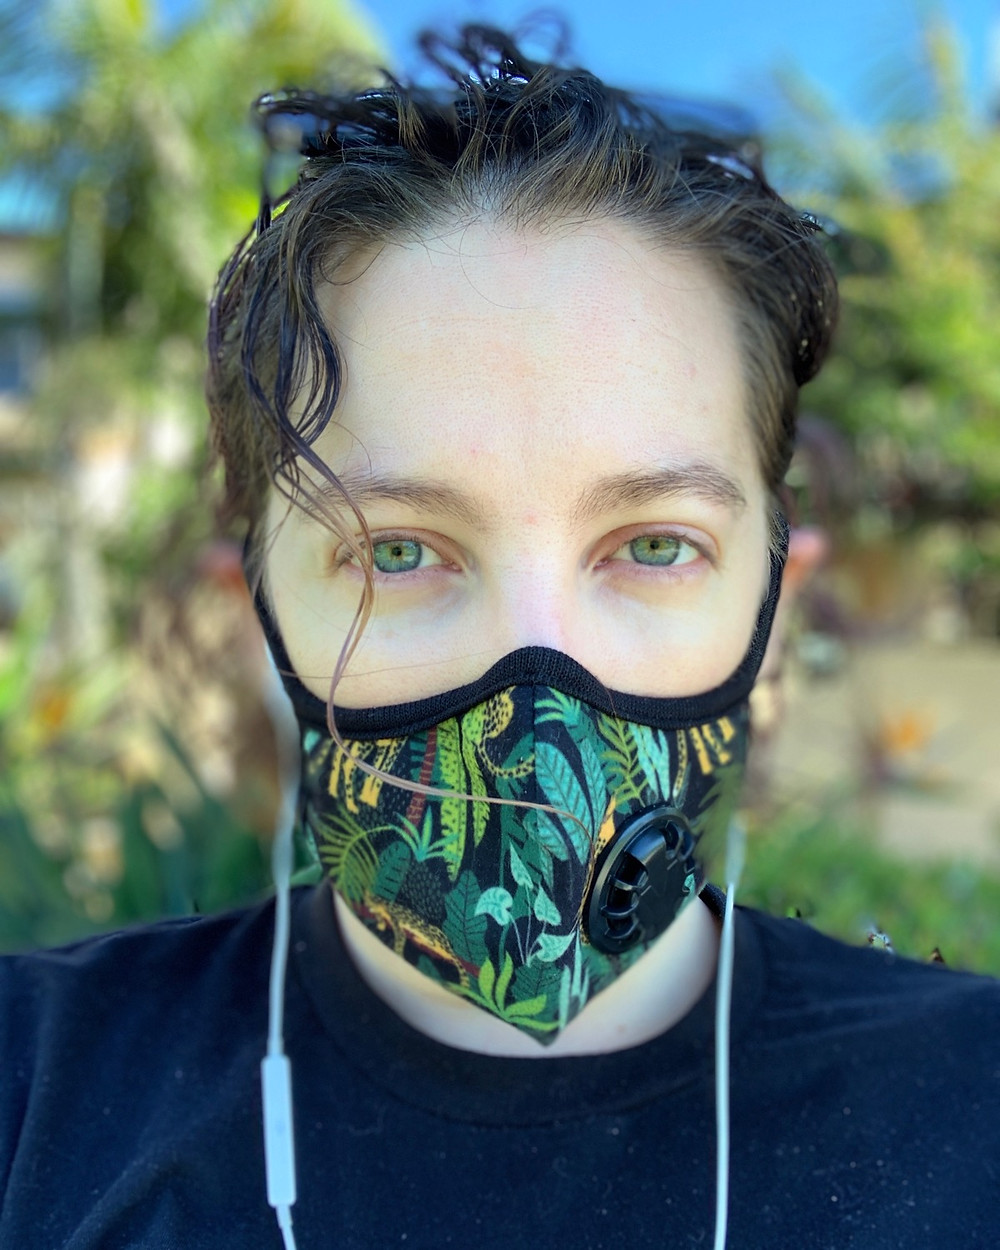 Pale woman with green eyes and dark brown curly hair. Her hair is tied back and she has sunglasses on the top of her head. She's wearing a jungle print N95 mask. The background is blurred and she is outside on a sunny day.